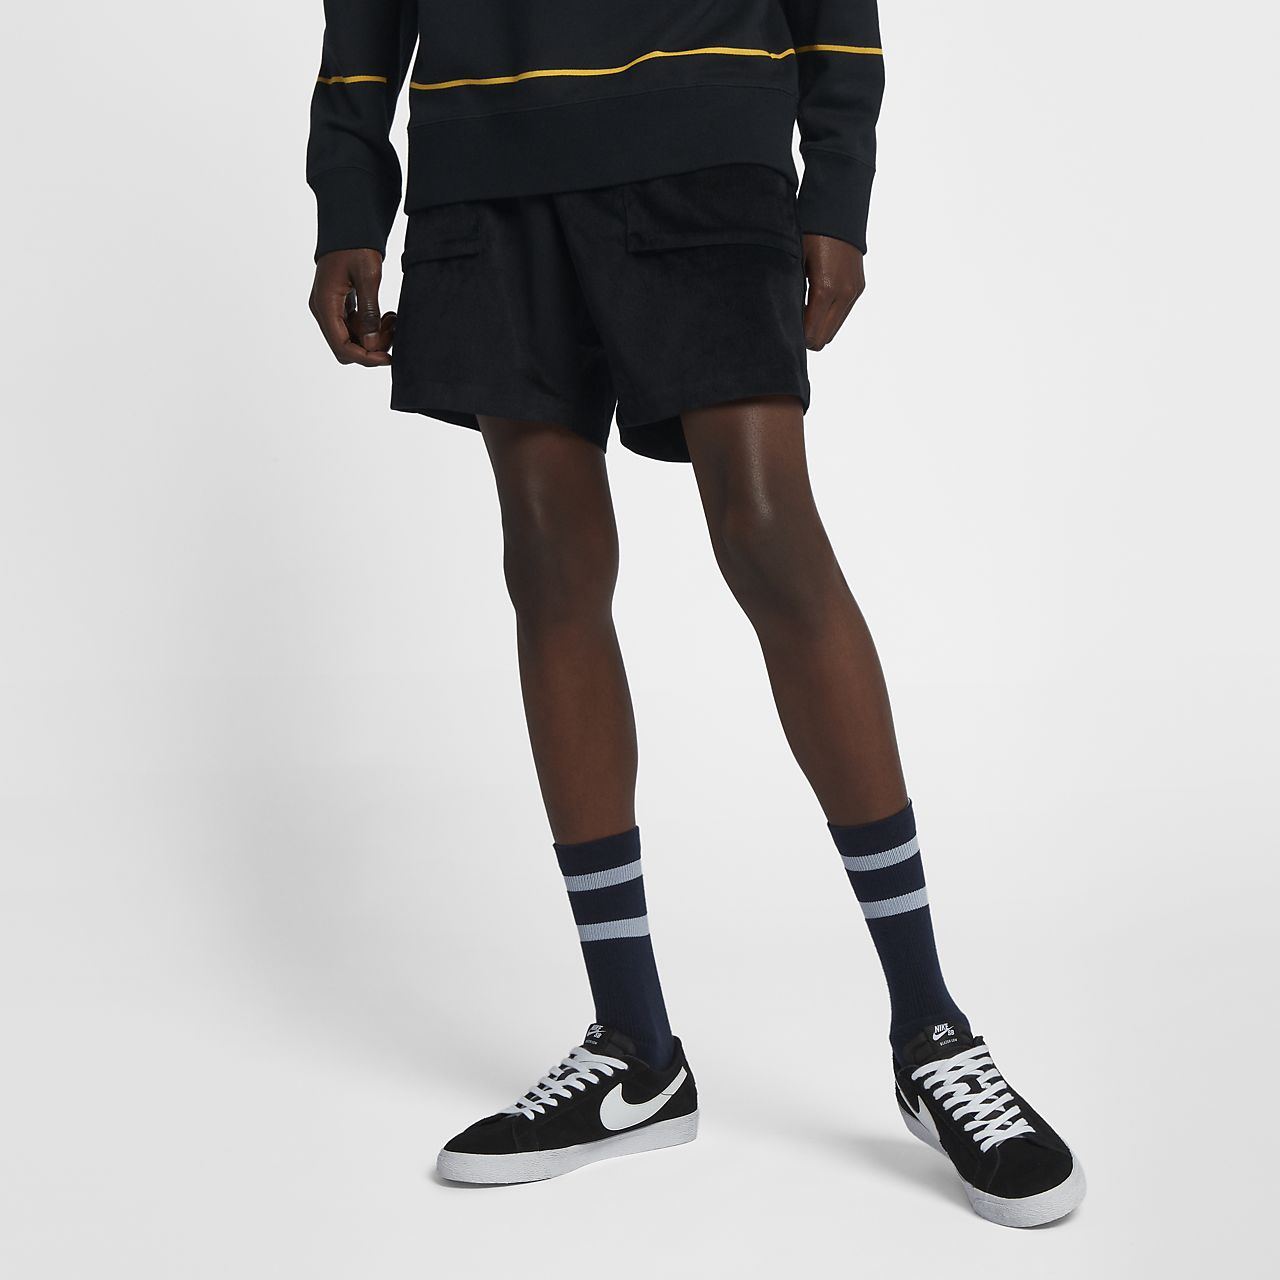 Nike SB Dri-FIT Flex Men's Shorts